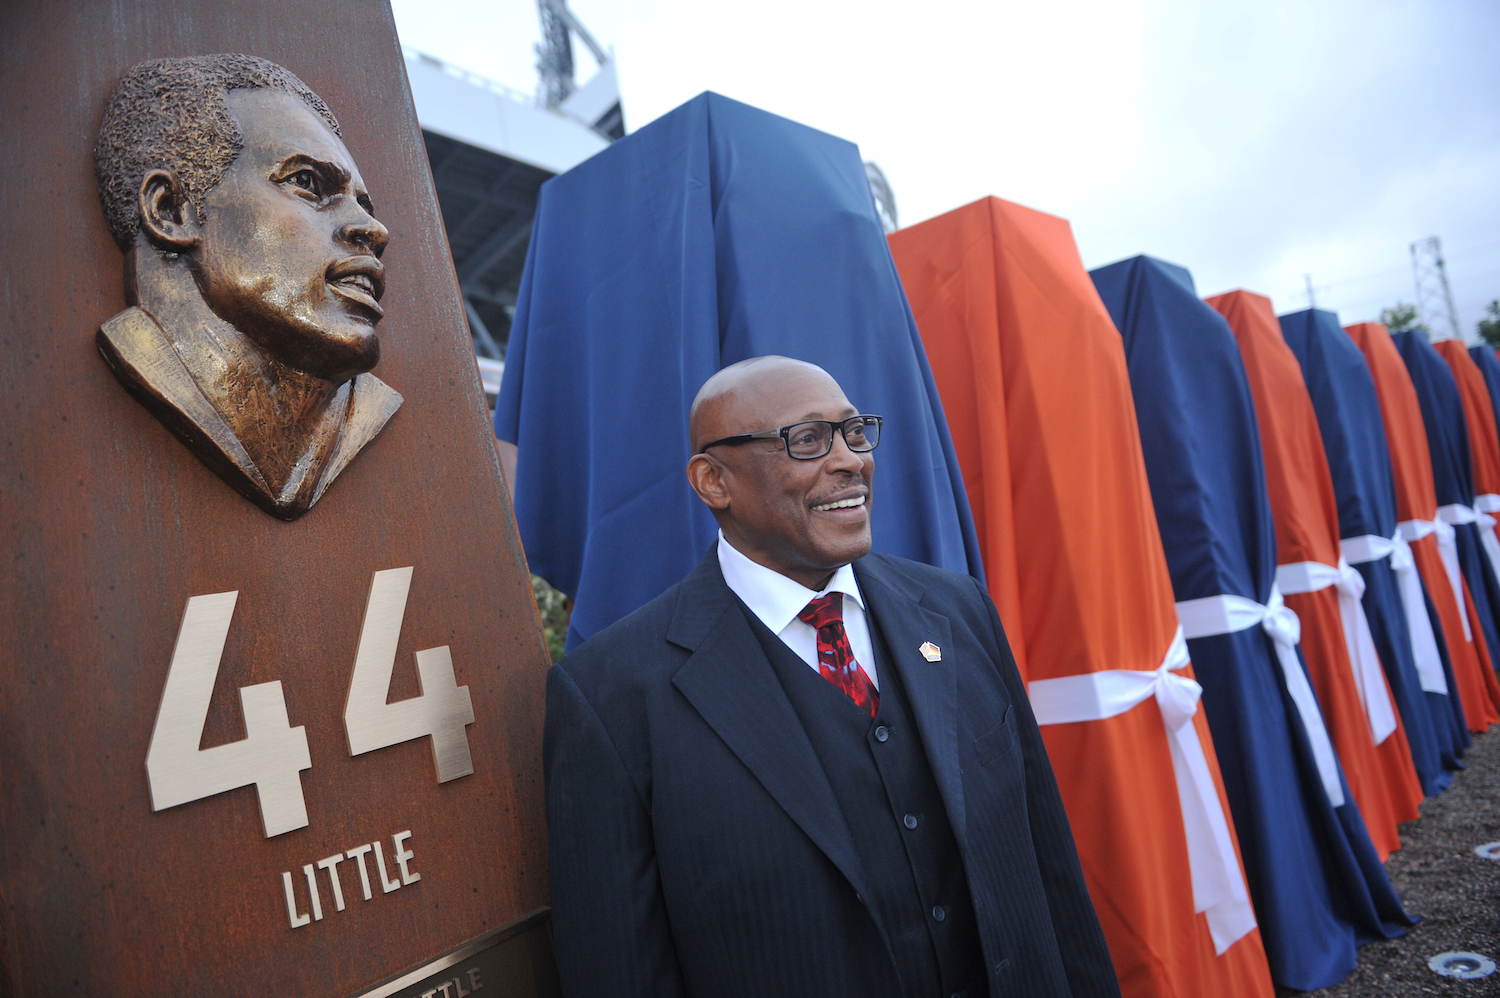 Floyd Little Denver Broncos